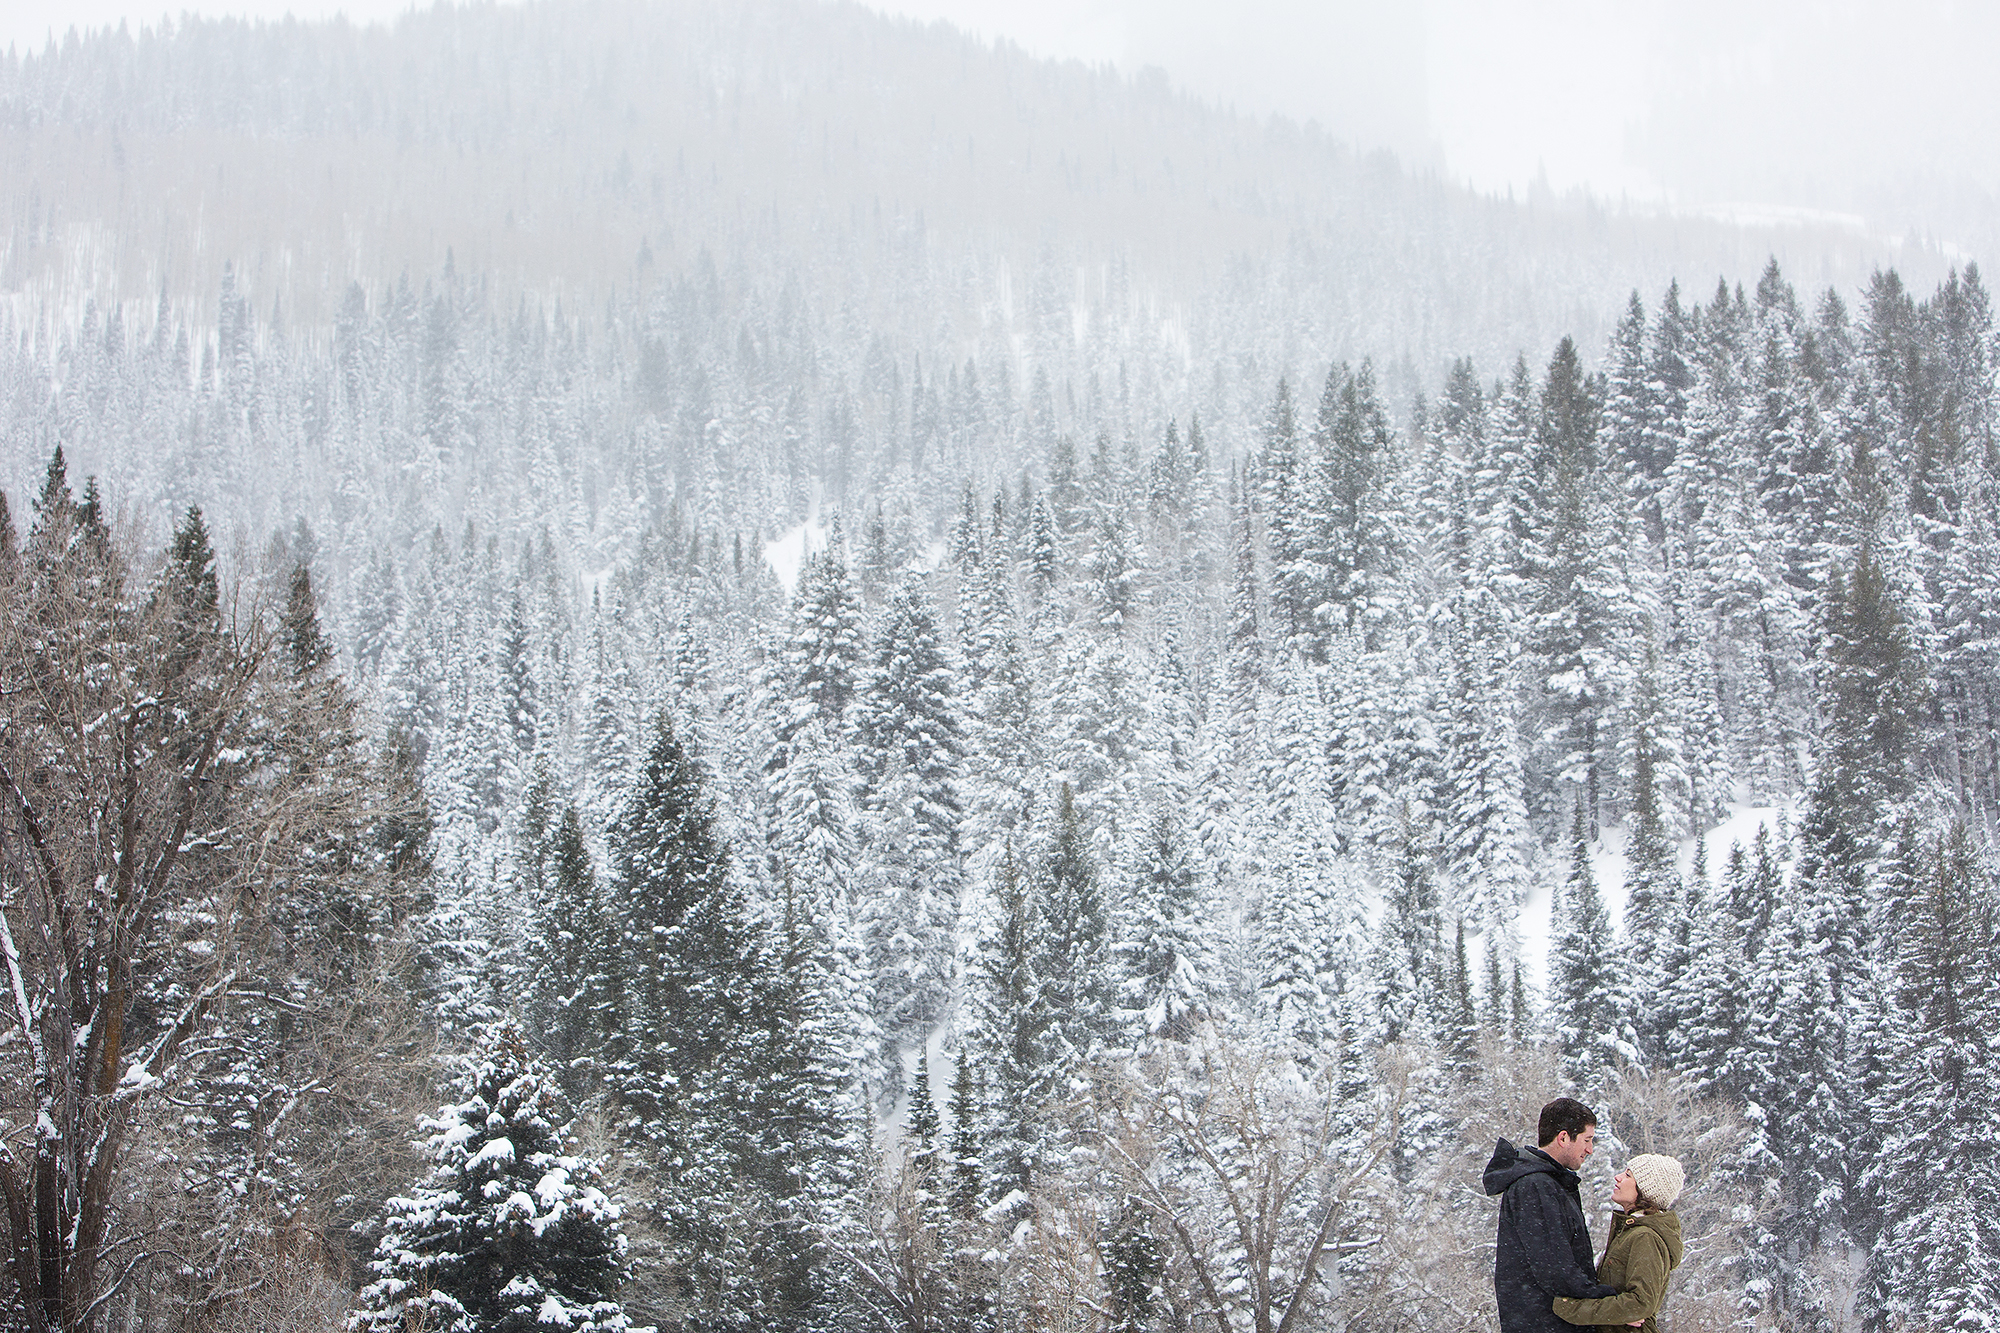 utah-winter-wedding-photography-09.jpg